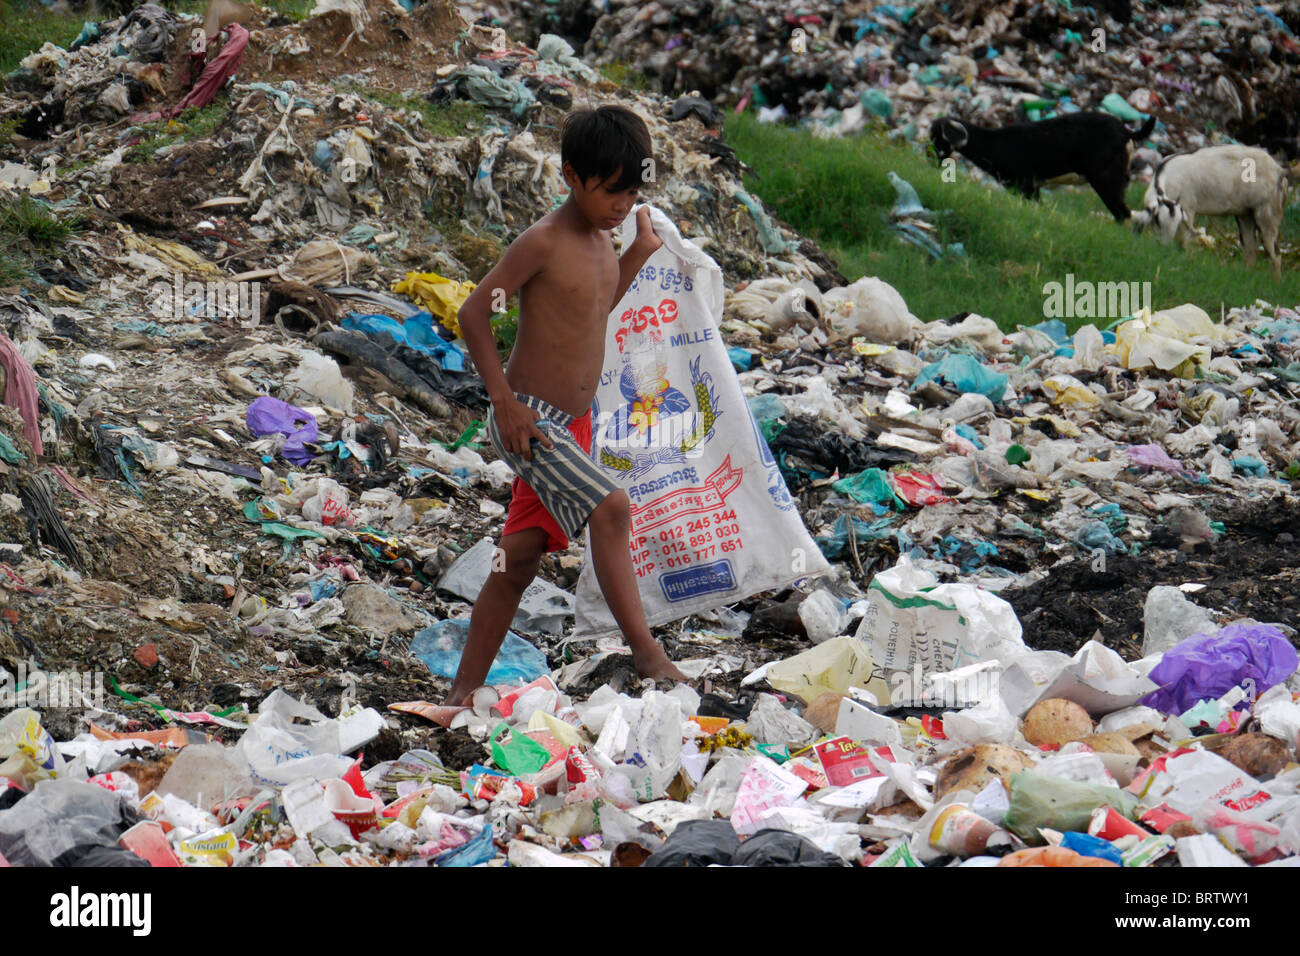 CAMBODIA Boy scavenging for recyclable garbage on rubbish dump of Mean Caeay, Phnom Penh. PHOTO by SEAN SPRAGUE - Stock Image